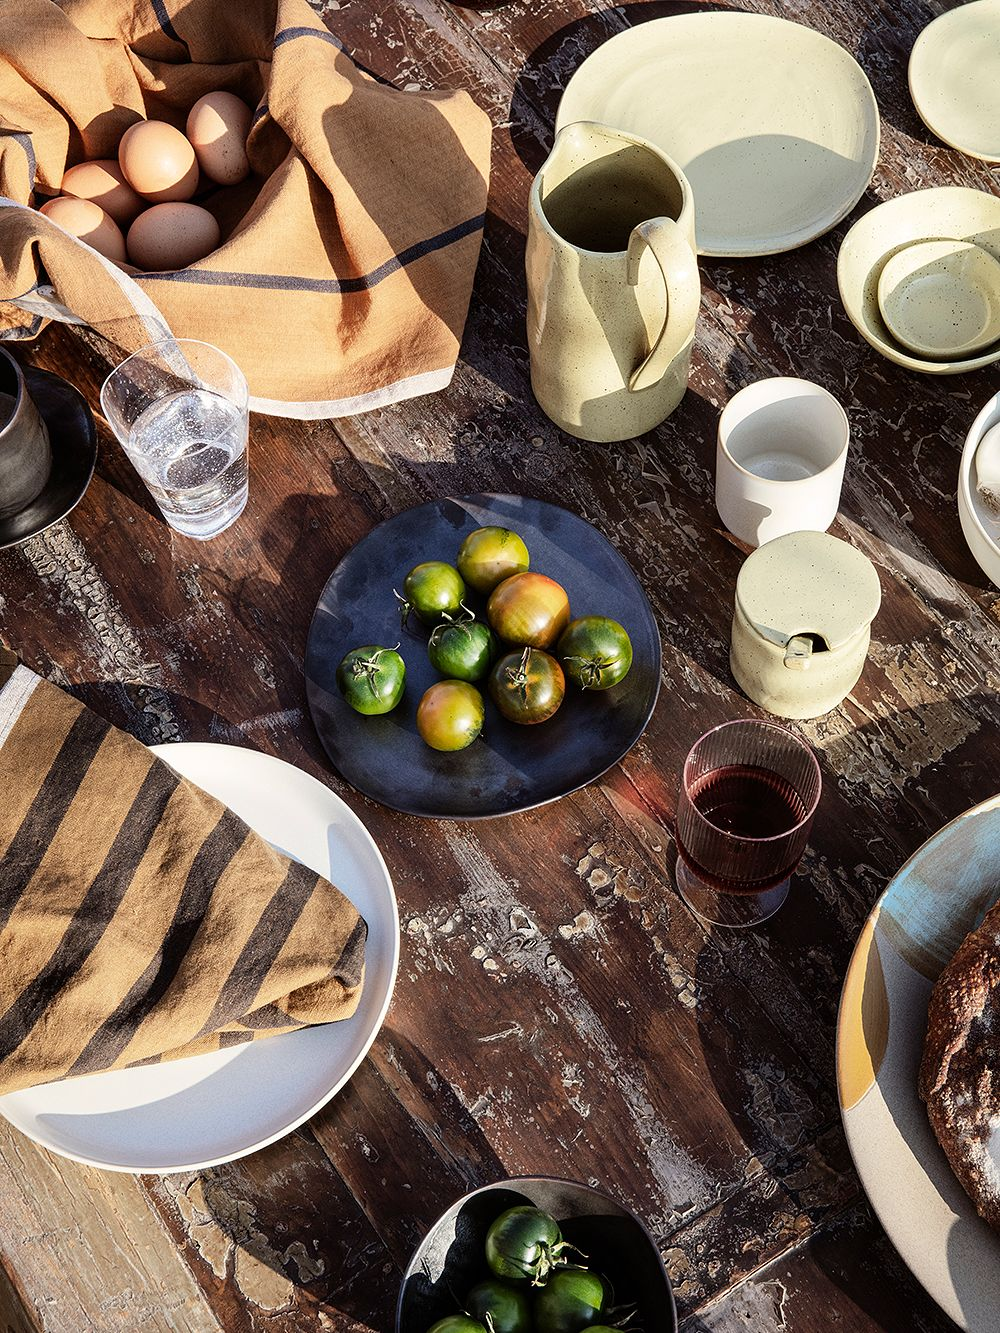 Ferm Living's Flow tableware in a table setting outdoors.